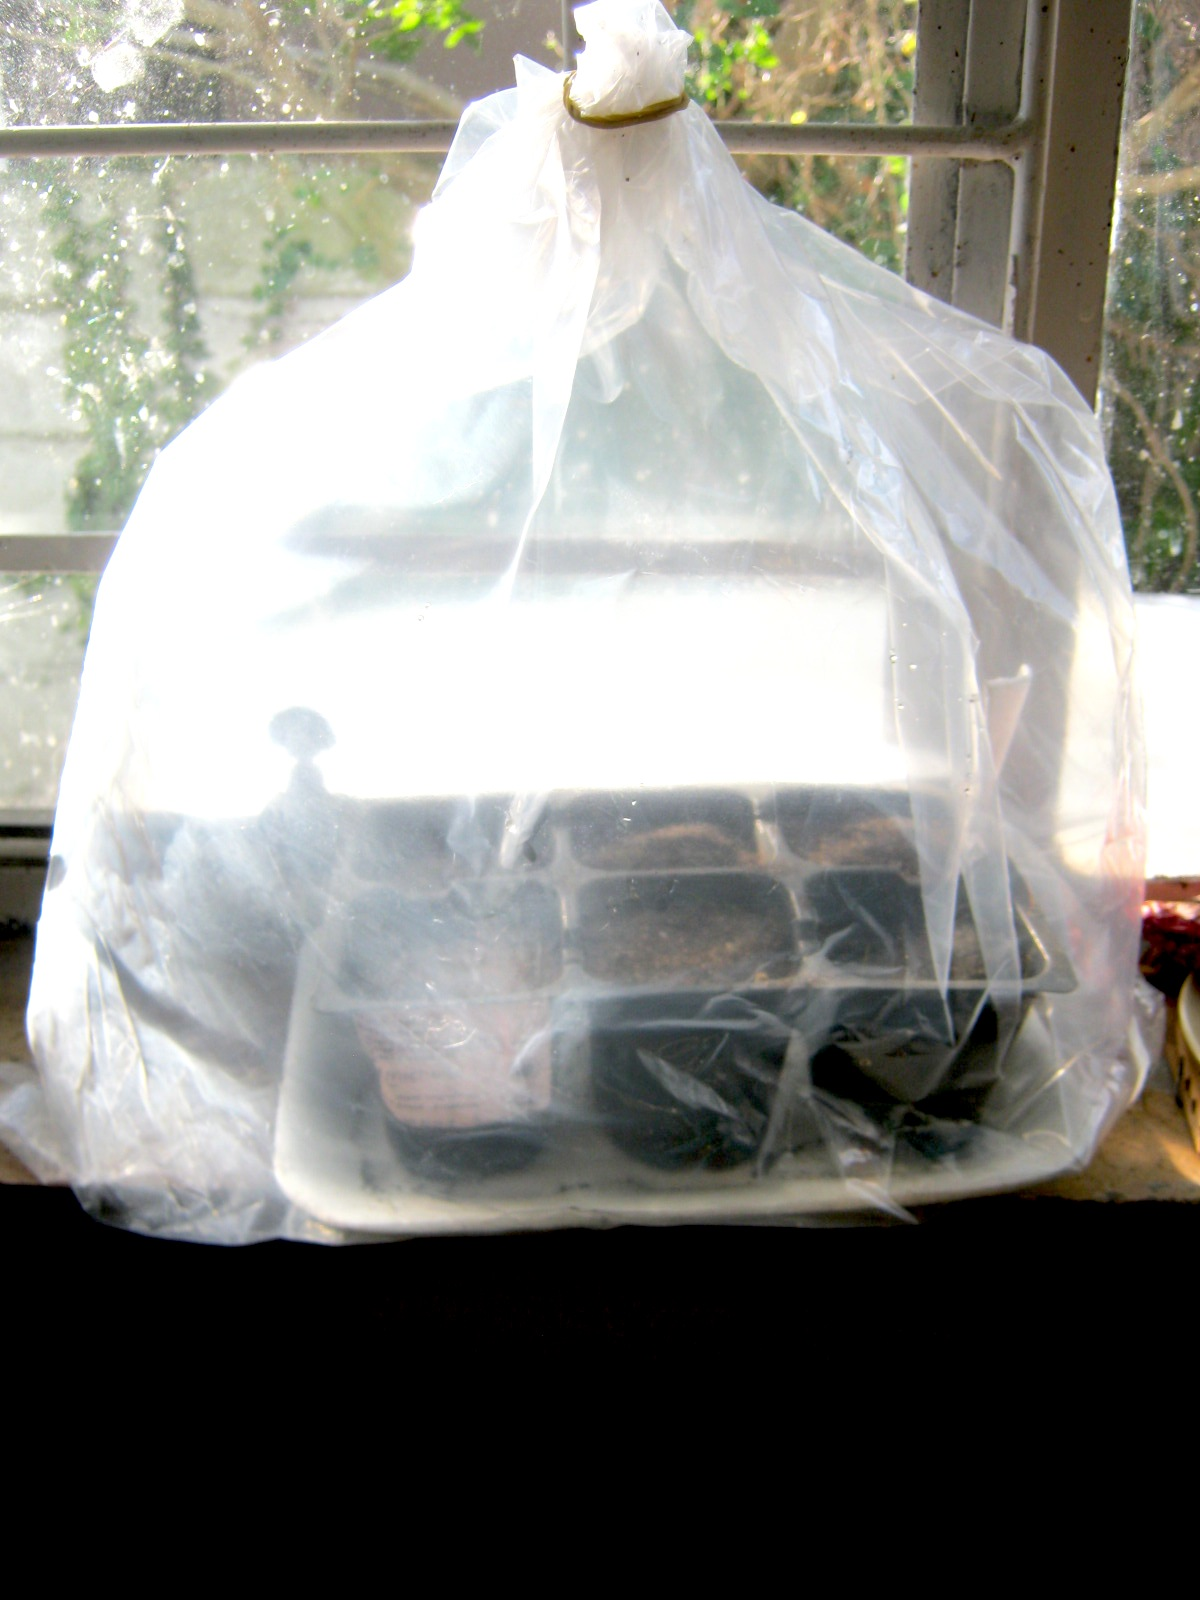 Carolina Reaper seeds in a plastic bag on window sill